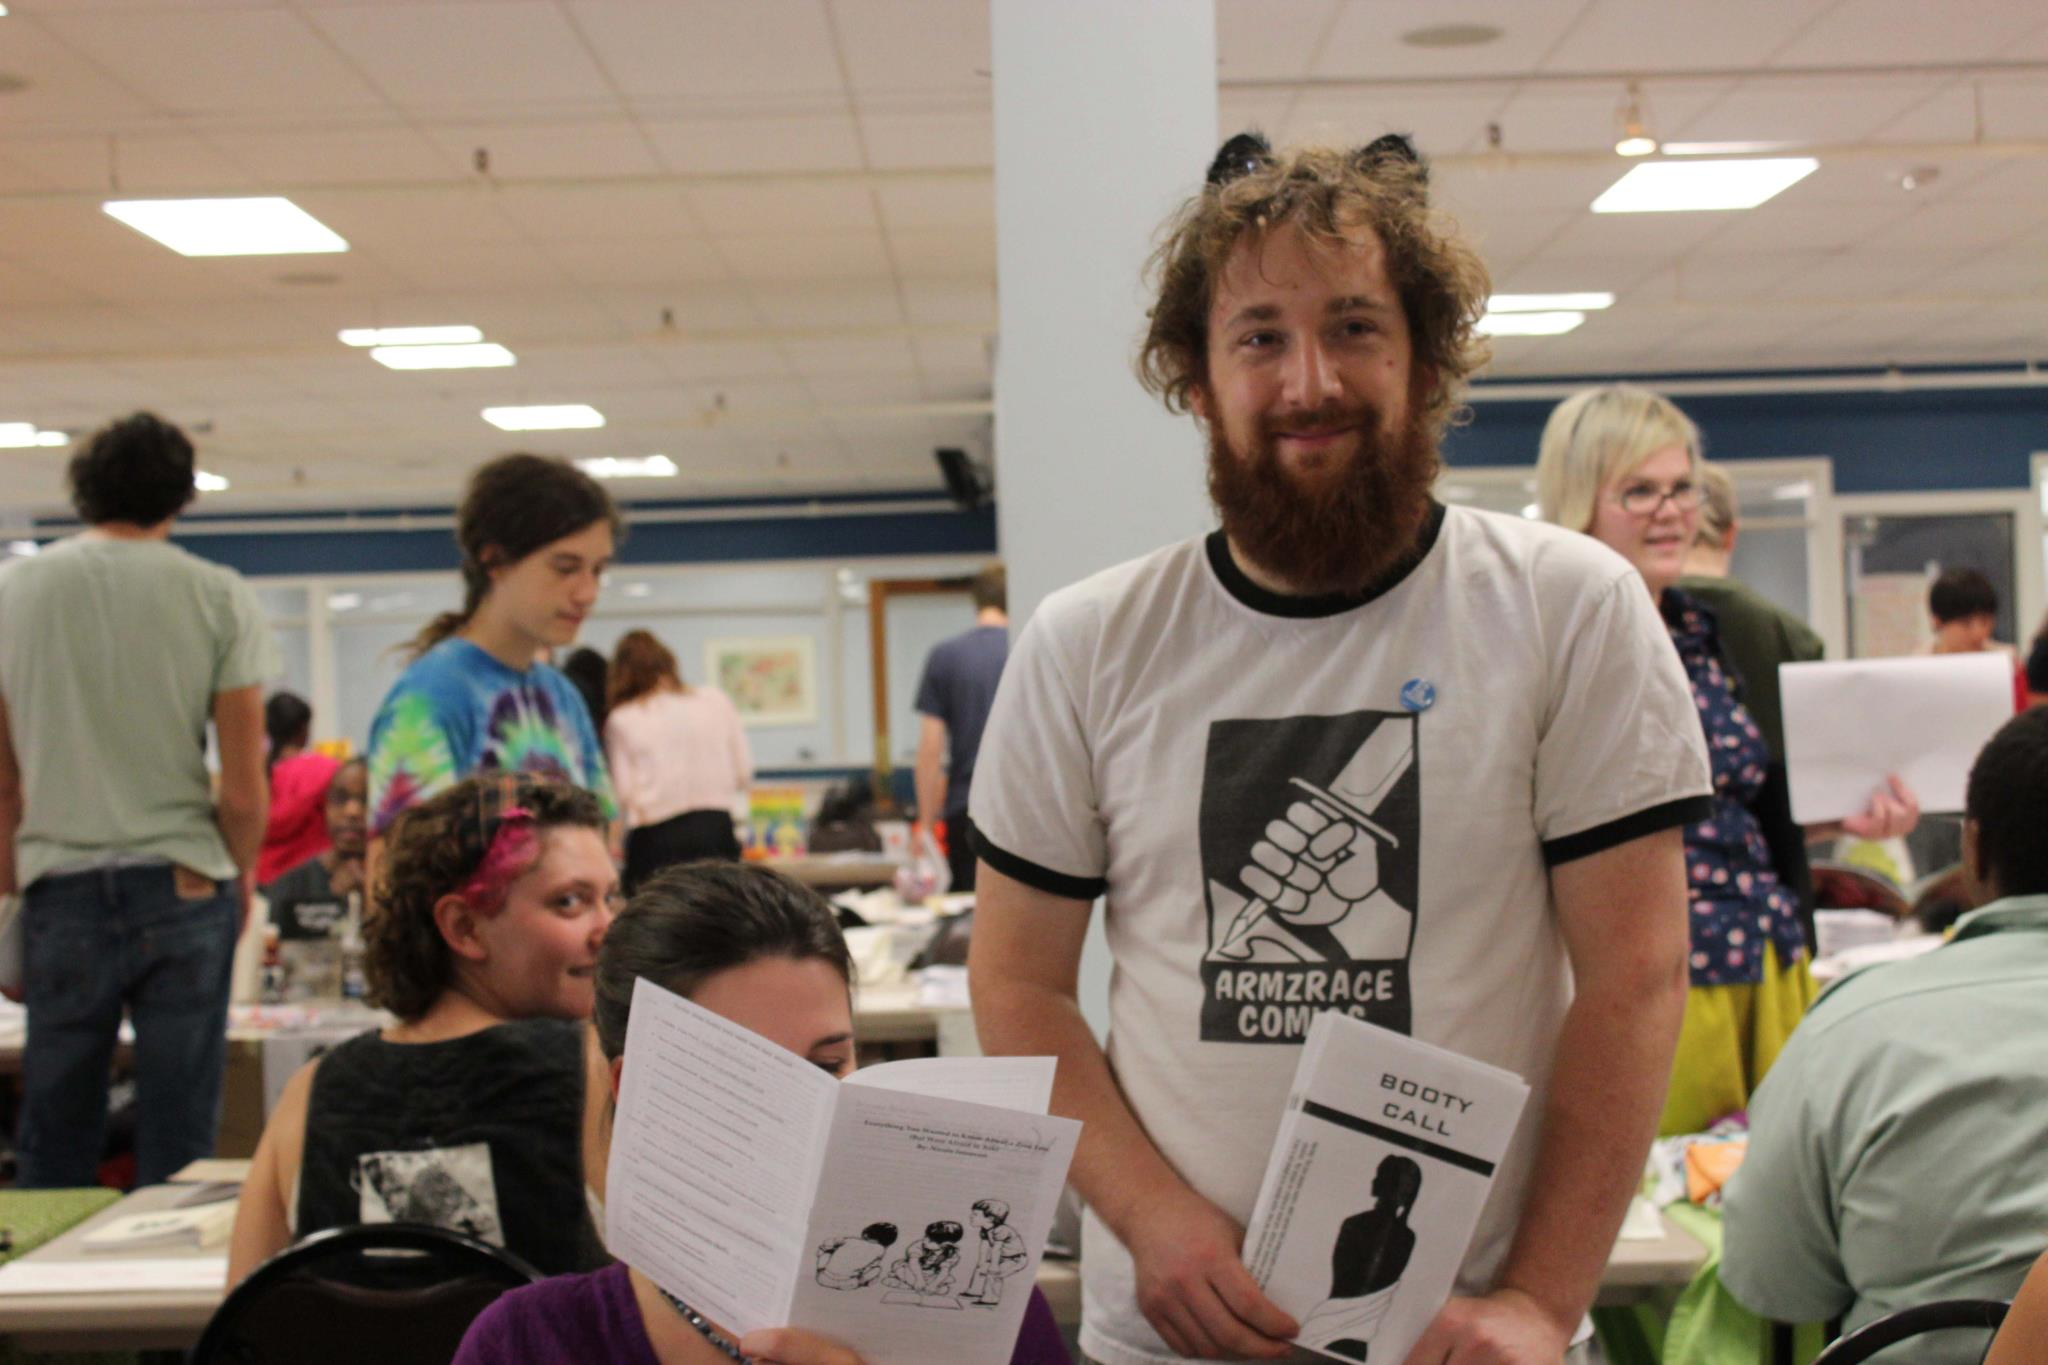 Tabling at the 2011 Richmond Zine Fest